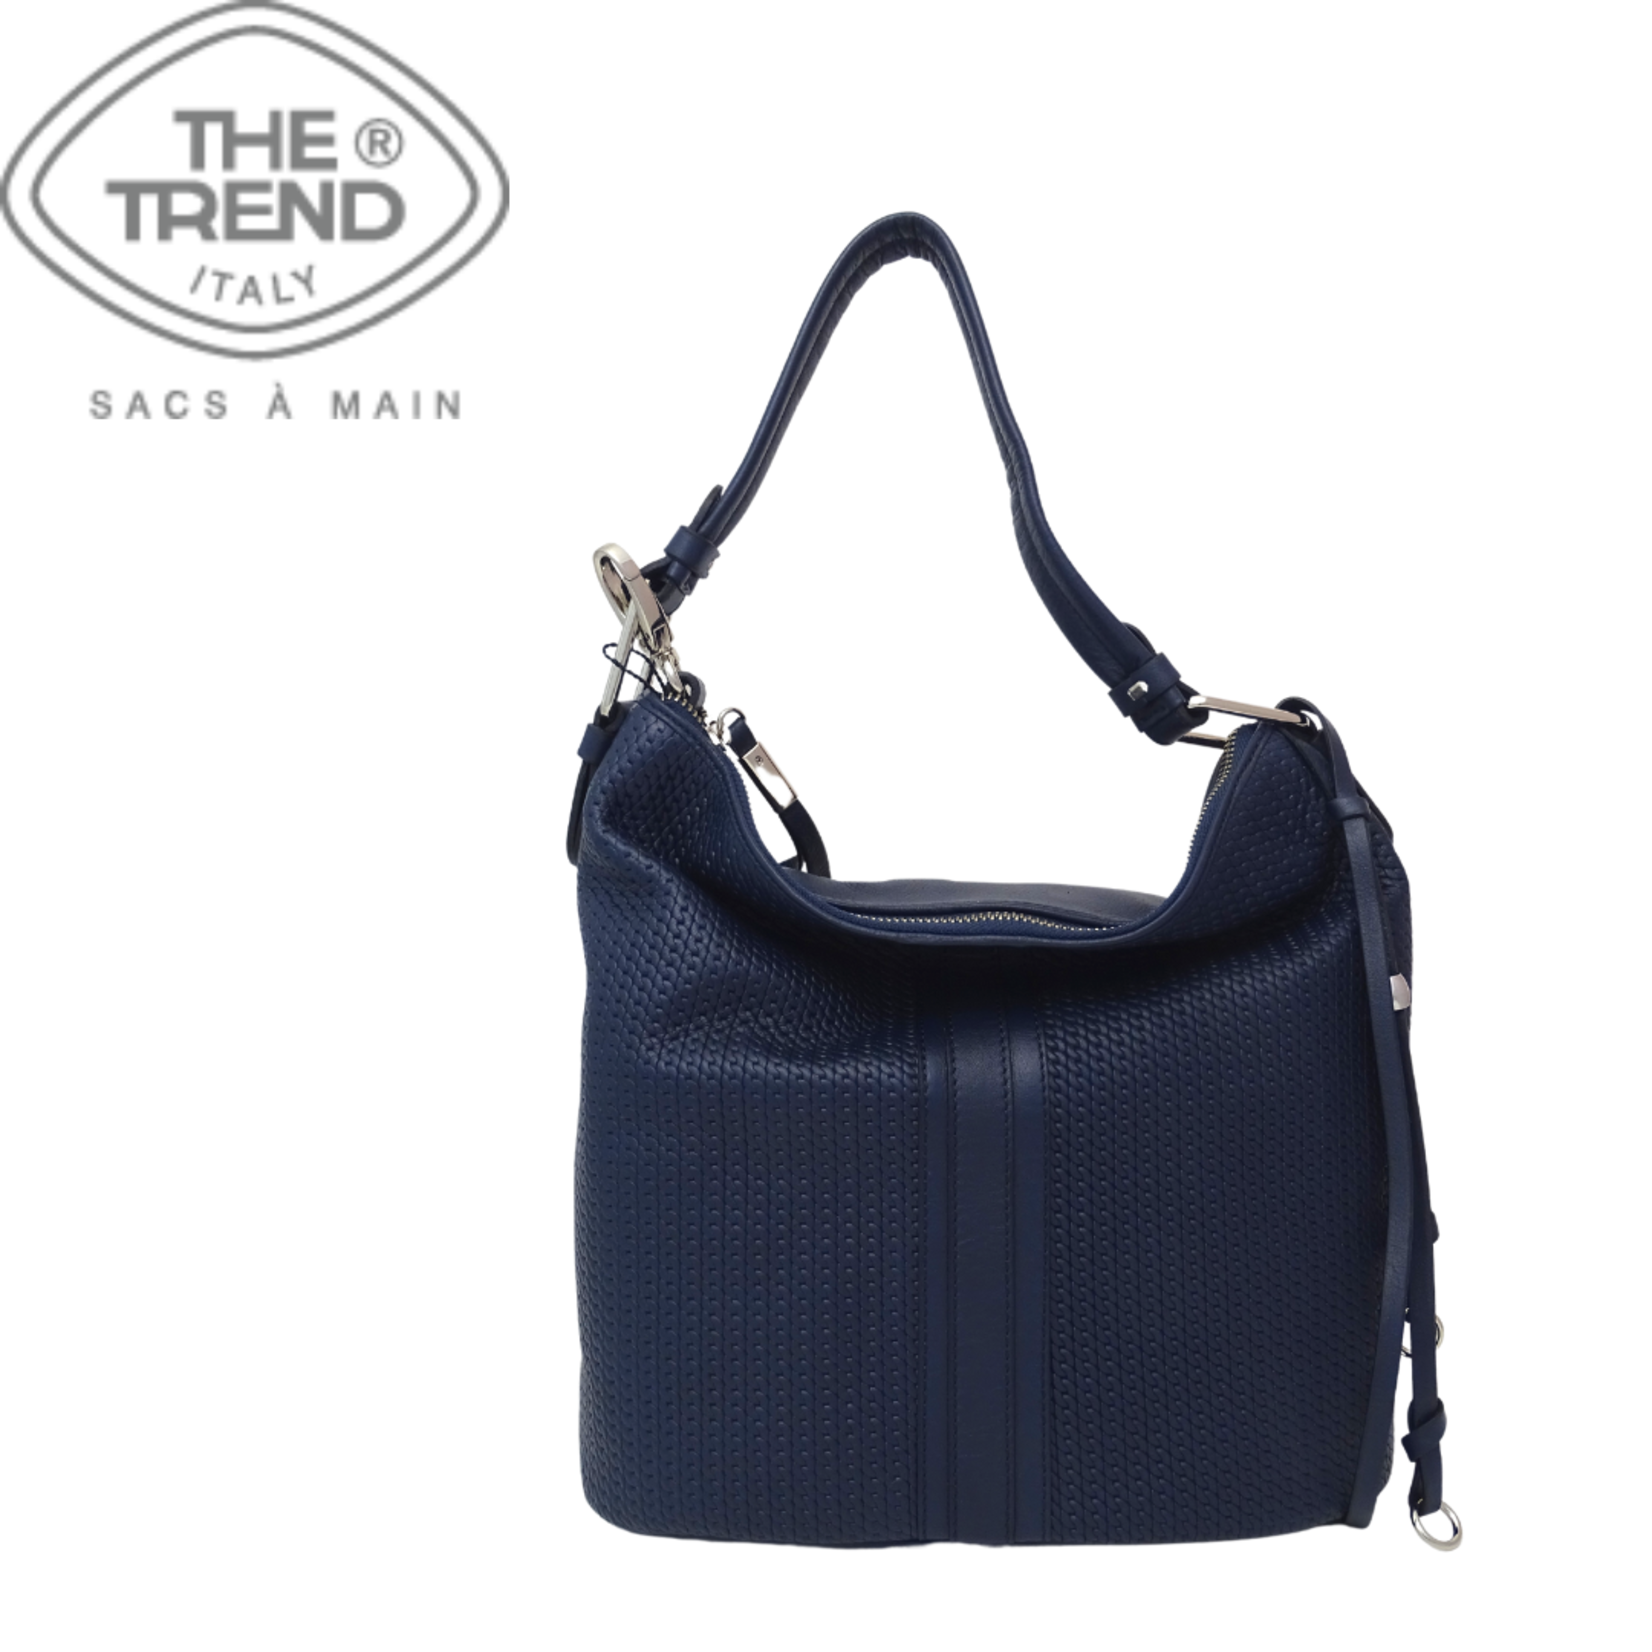 The Trend The Trend 2444404 navy